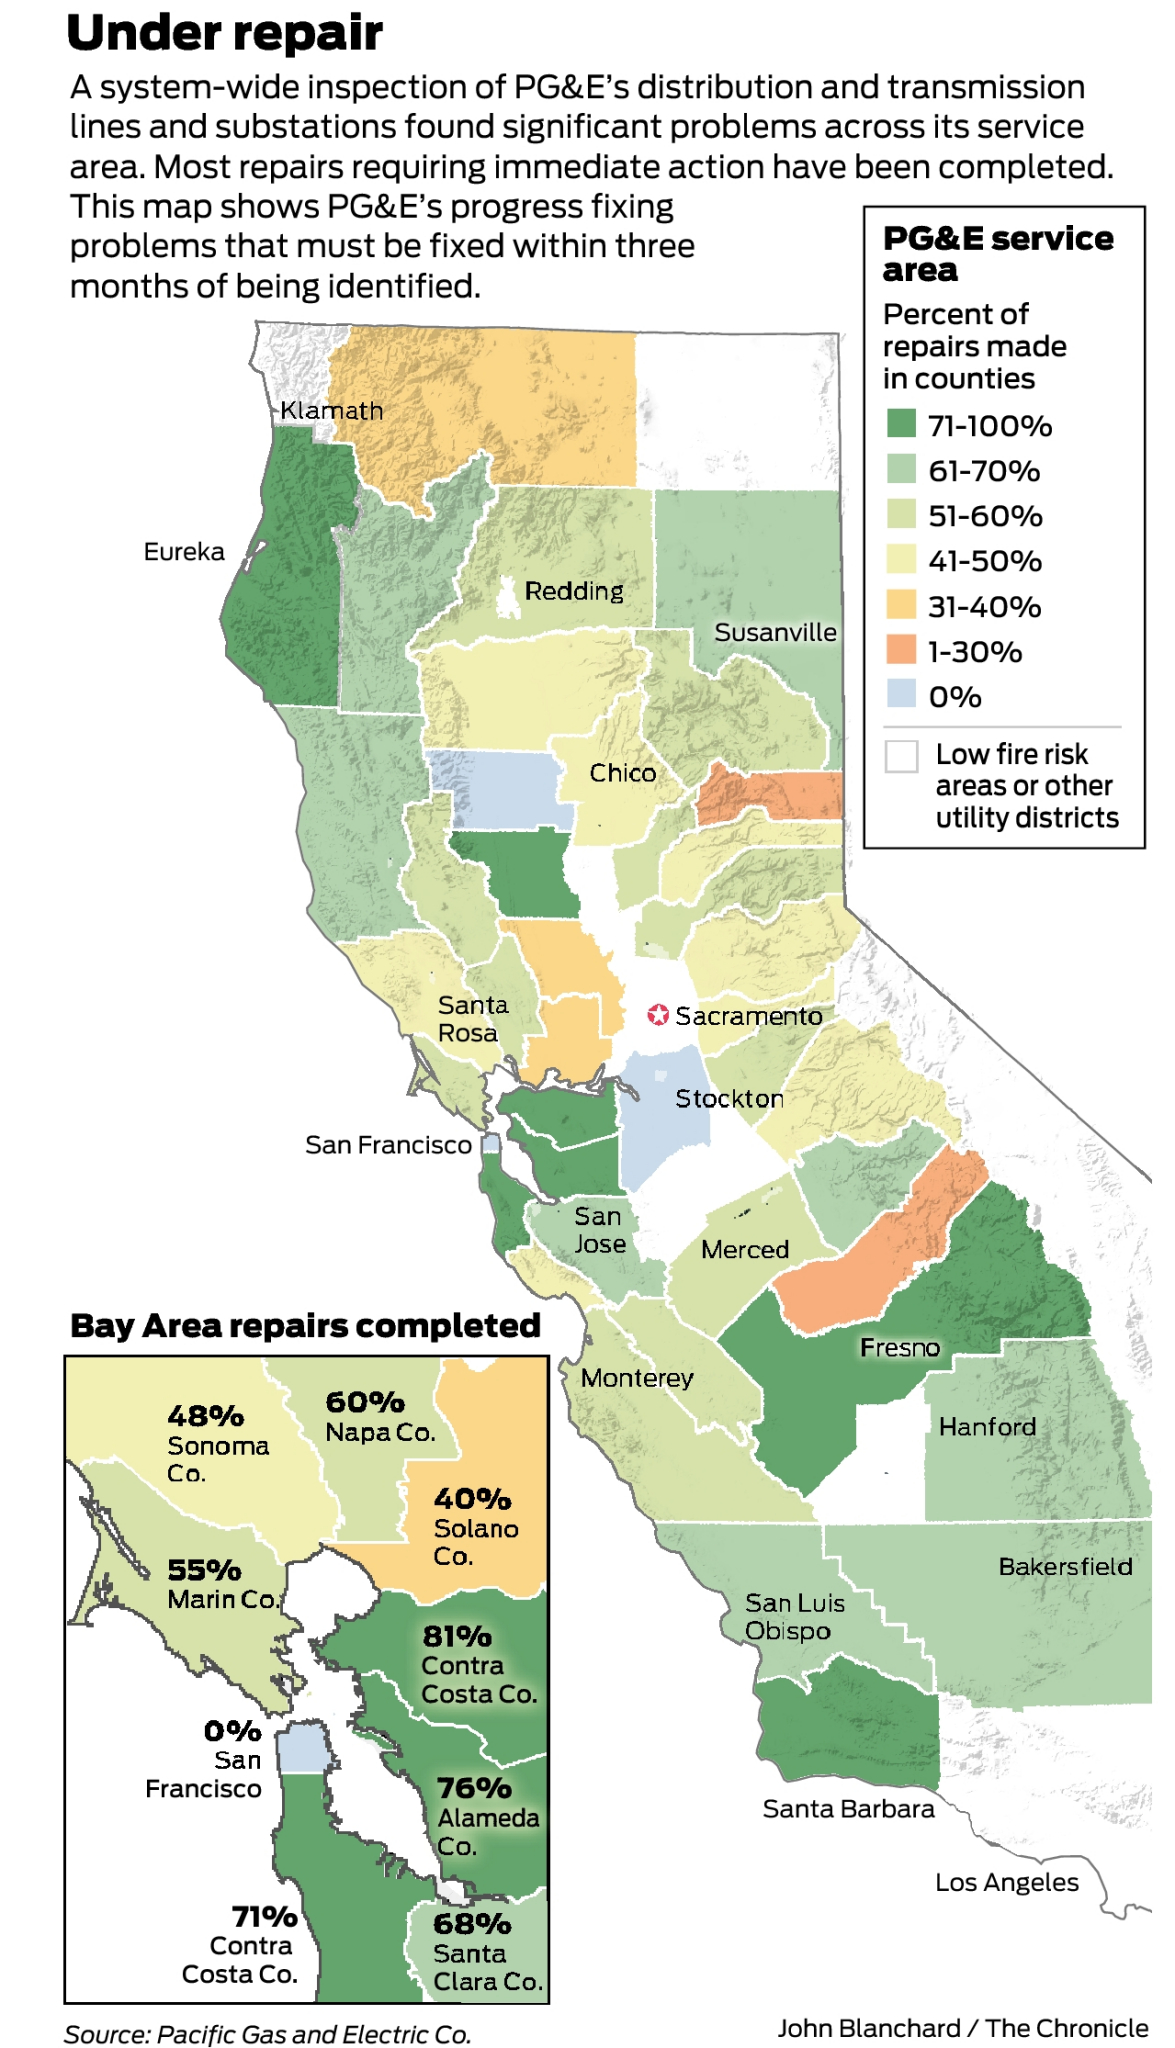 Pge Coverage Map : coverage, Power, Inspections, Revealed, 10,000, Problems, Immediate, Repair